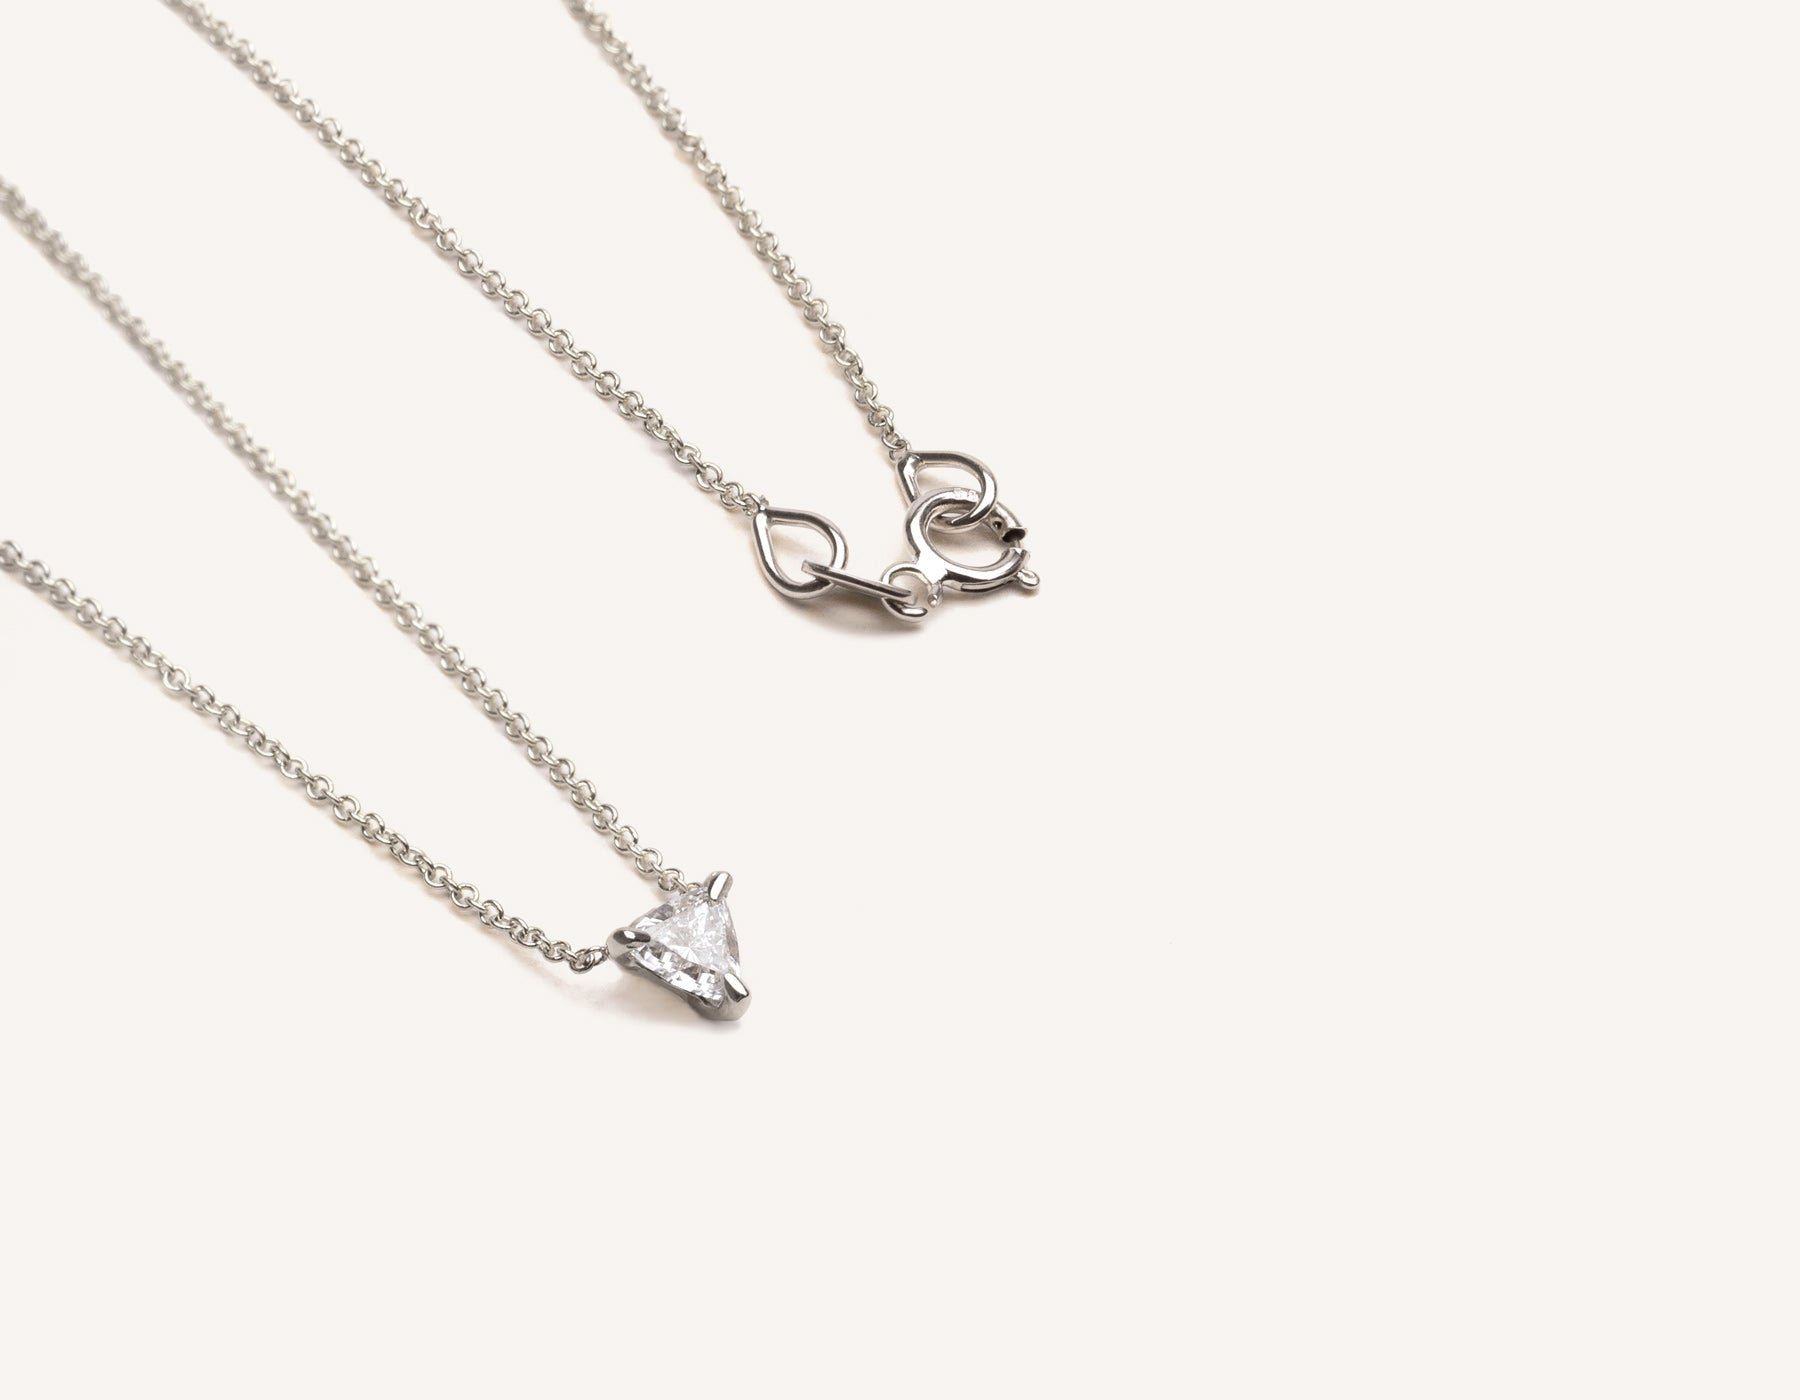 simple unique 14k solid gold .17 ct Trillion Diamond Necklace on delicate chain by Vrai & Oro modern jewelry, 14K White Gold